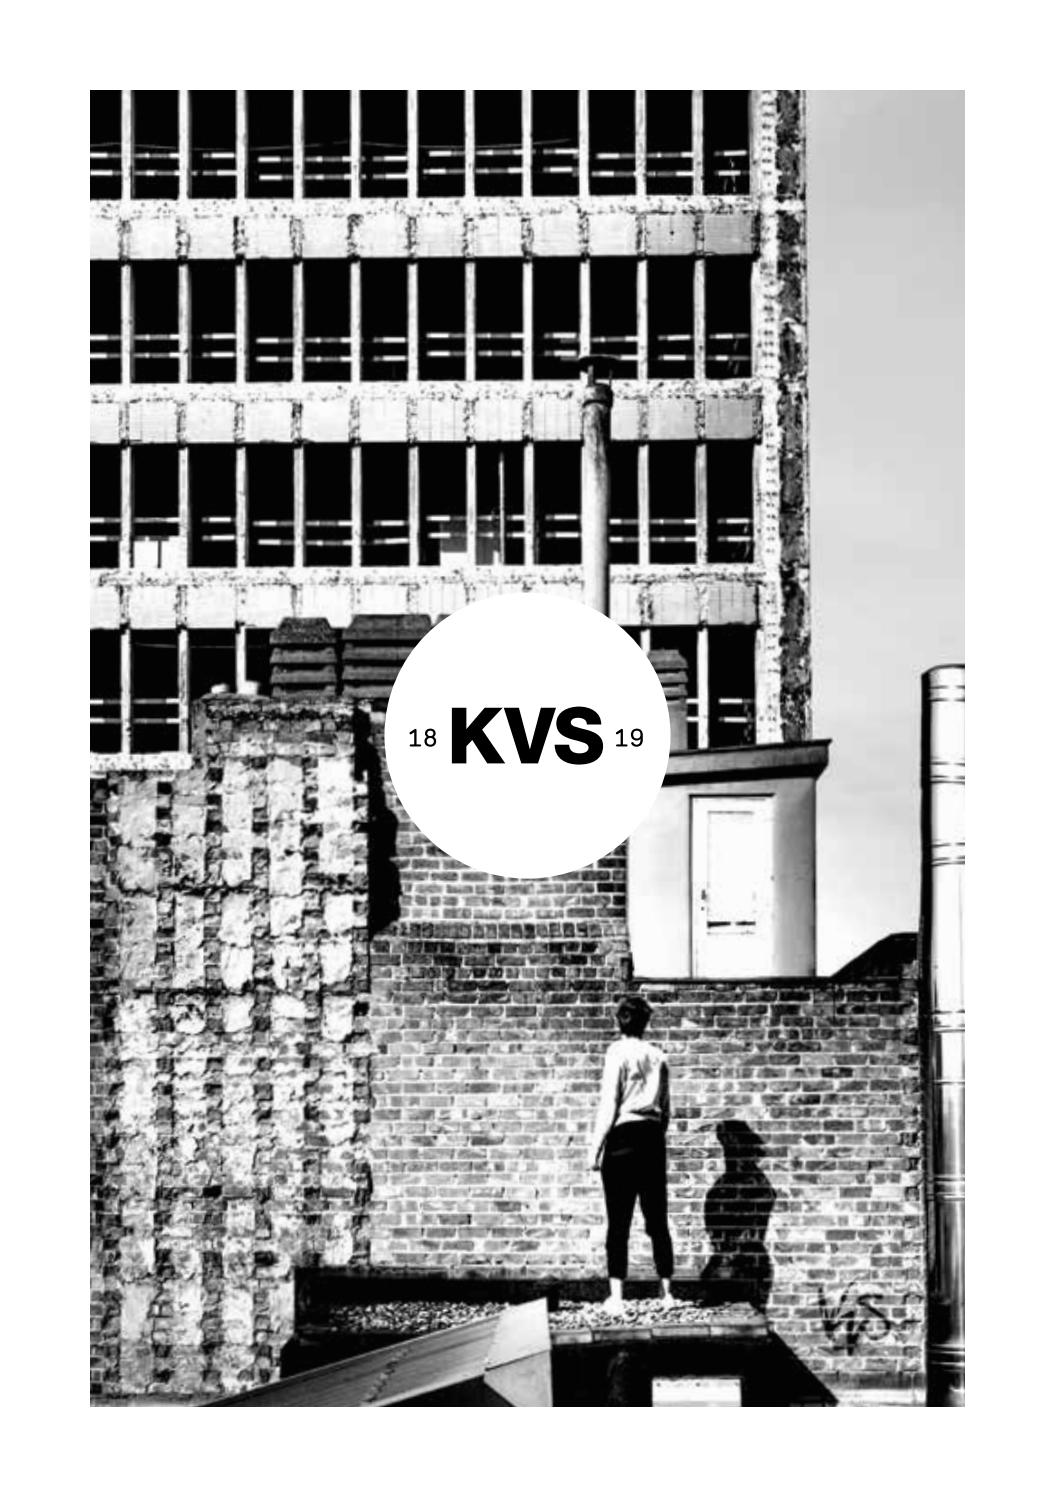 Montage Photo Cadre Multiple Kvs Aanbod 18 19 By Kvs Brussels Issuu